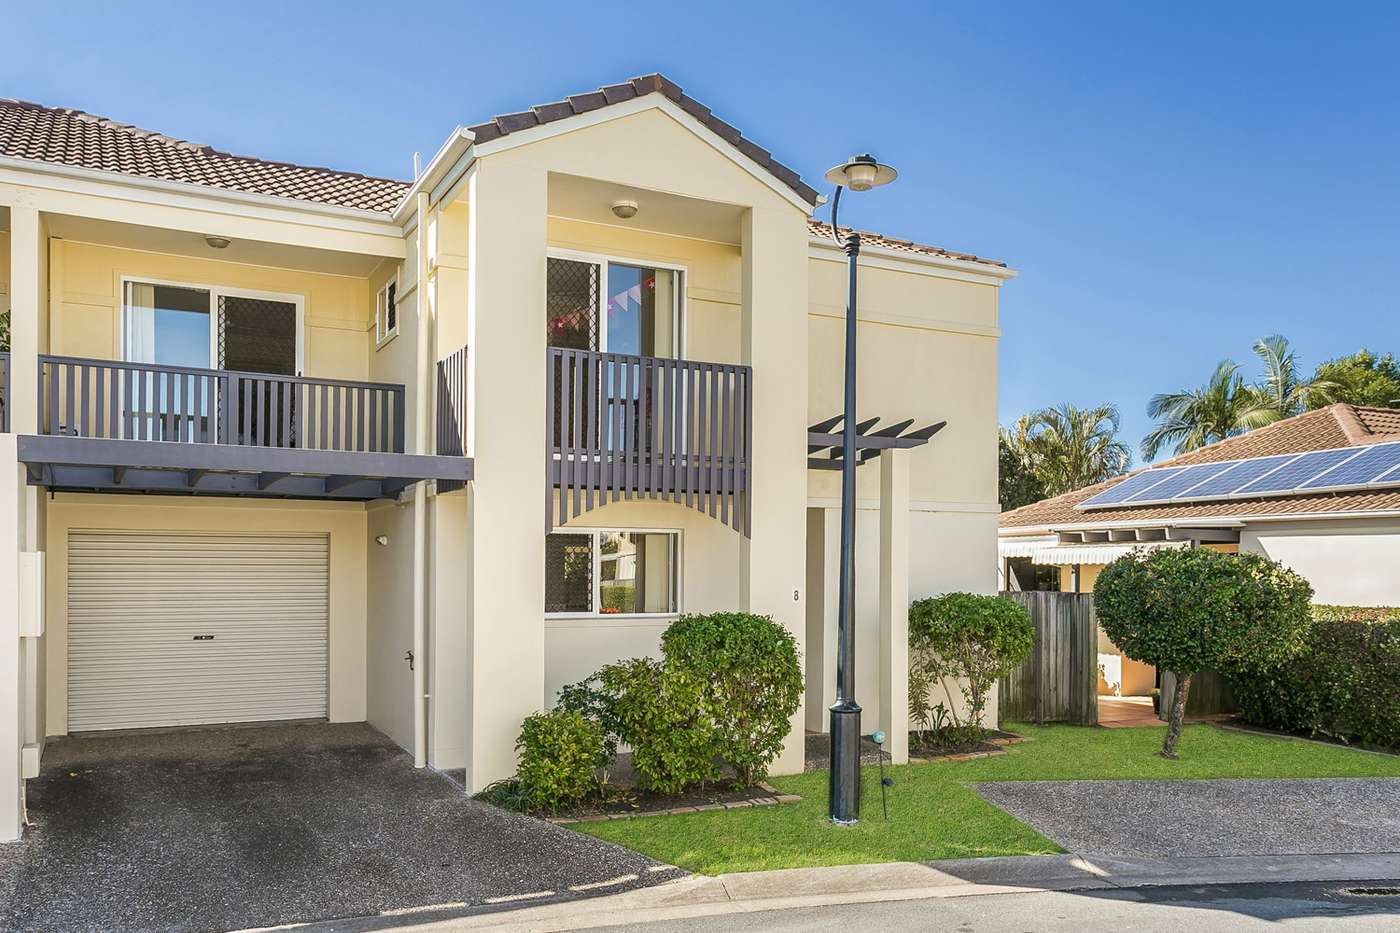 Main view of Homely unit listing, 8/9 Amazons Place, Sinnamon Park, QLD 4073